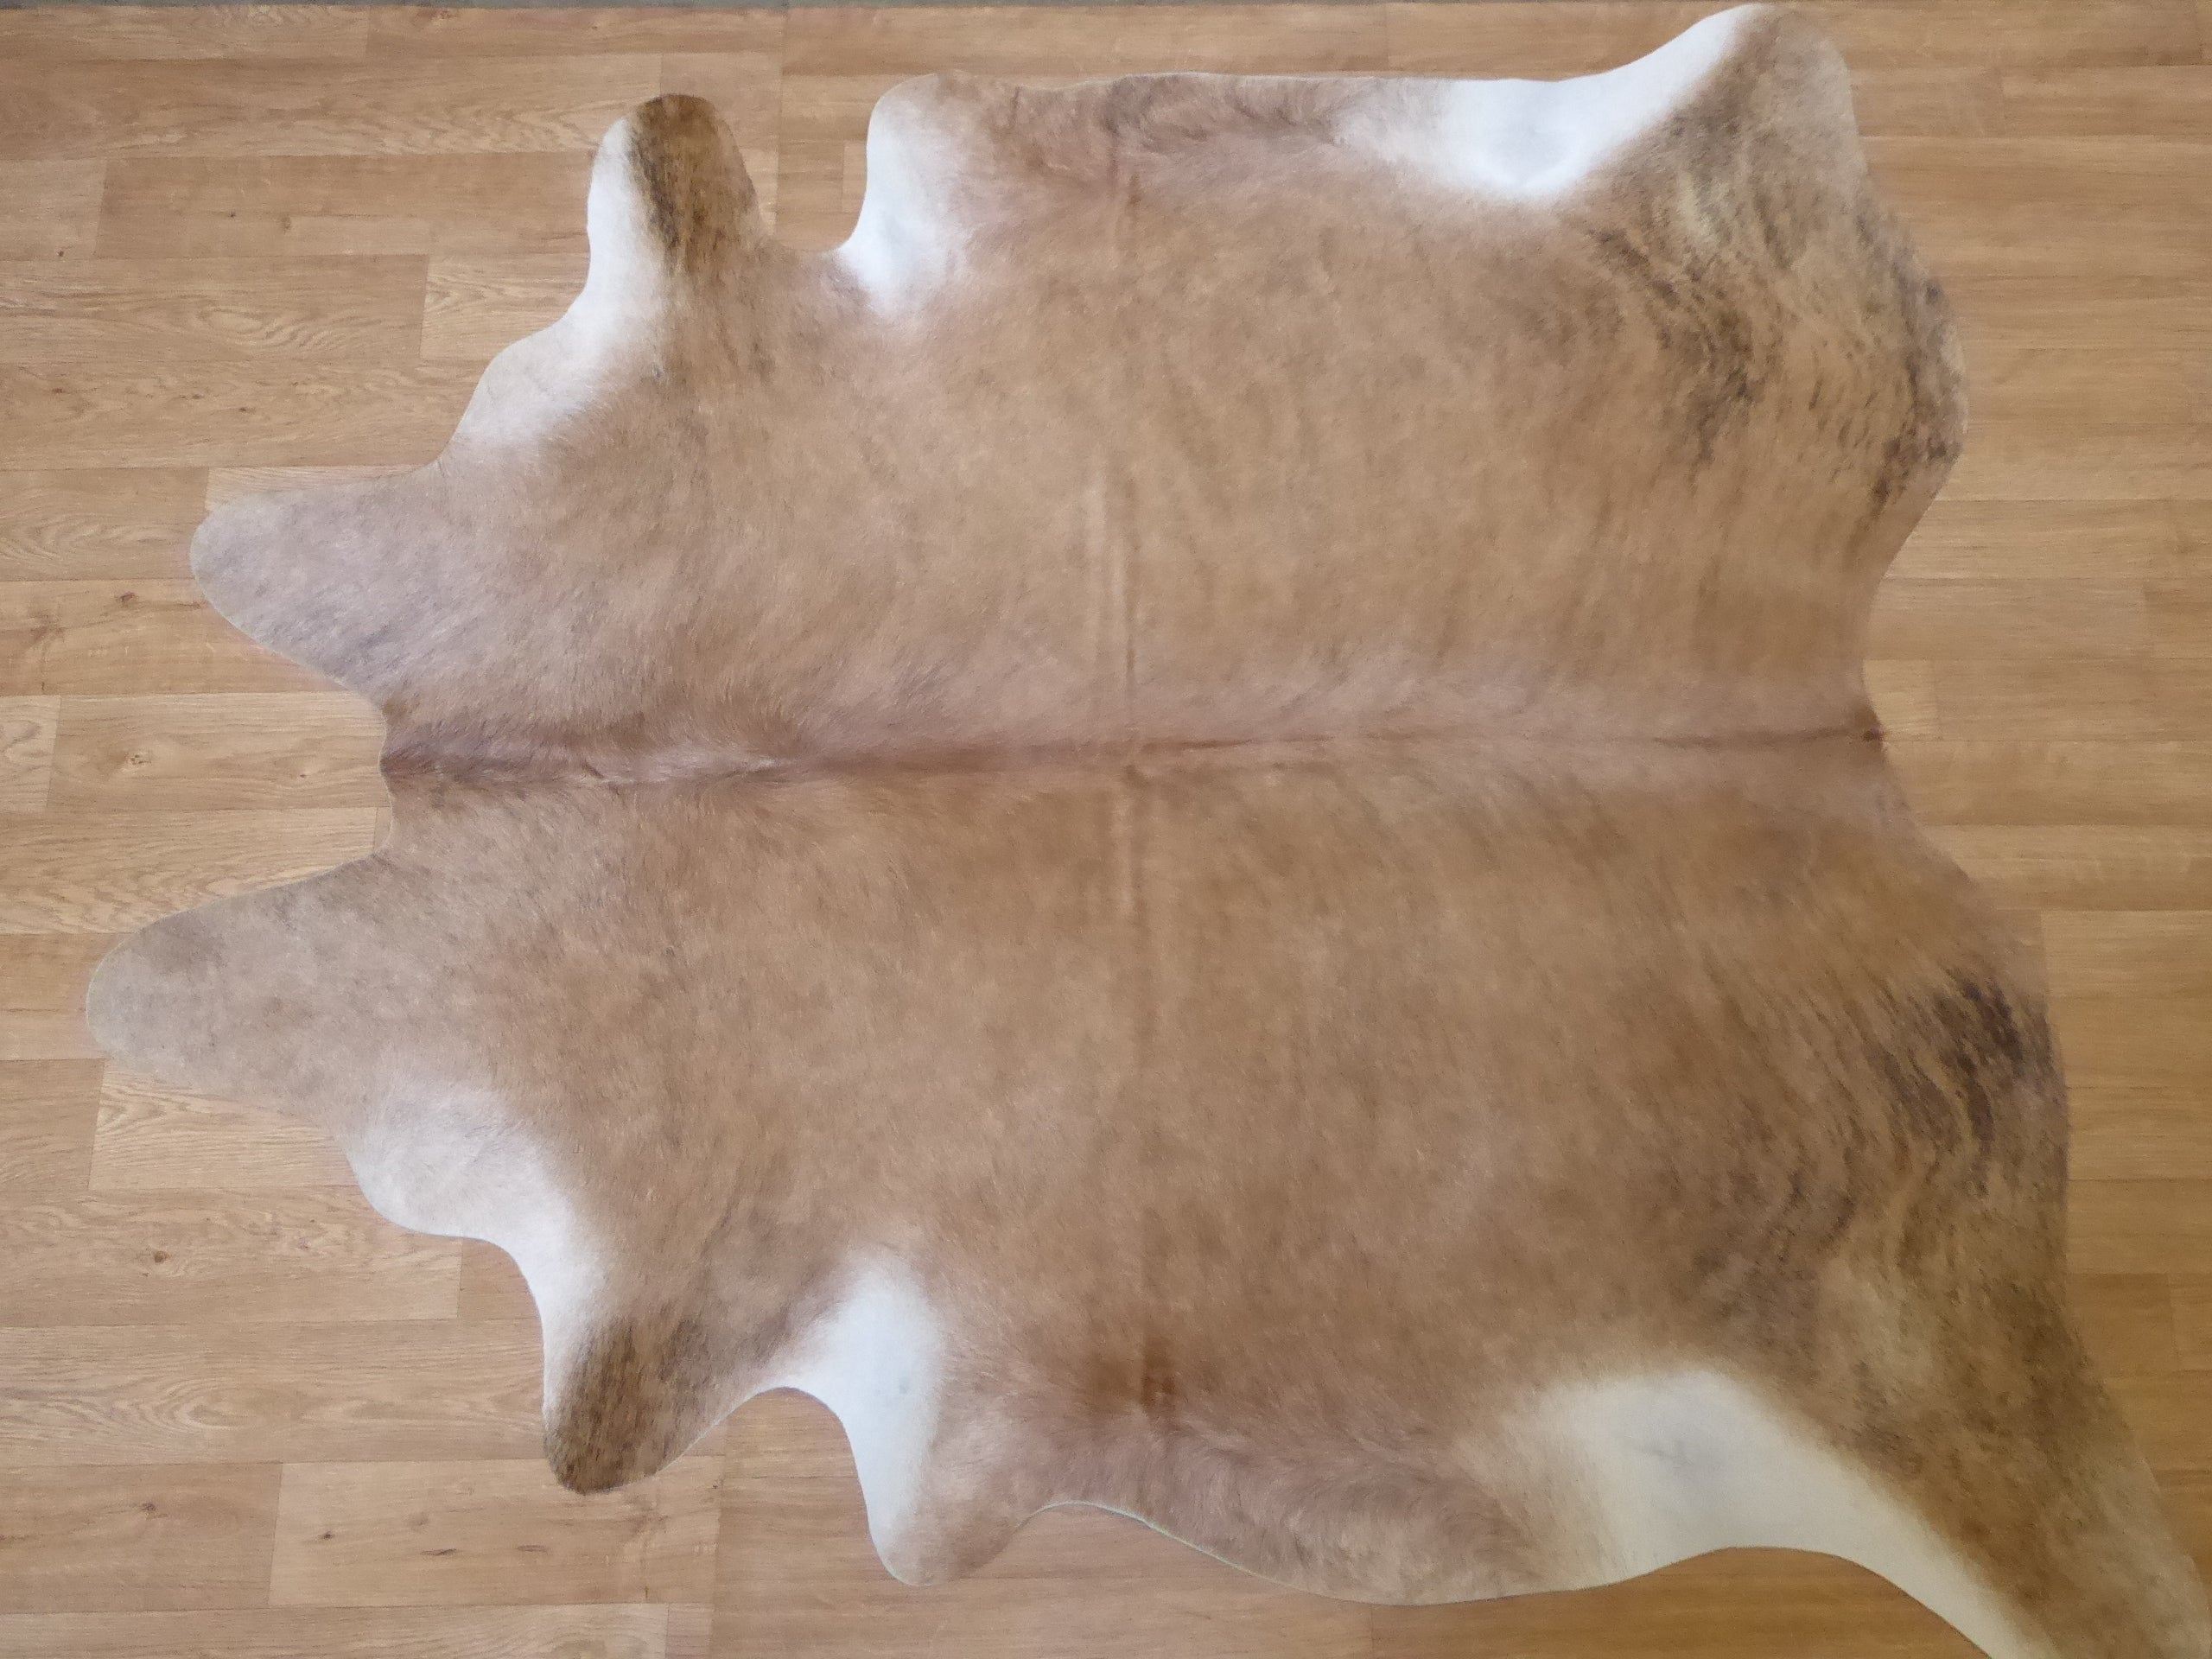 Natural Hair On Cow Hide : This Hide Is Perfect For Wall Hanging, Leather Rugs, Leather Bags & Leather Accessories (pic code 1020101)